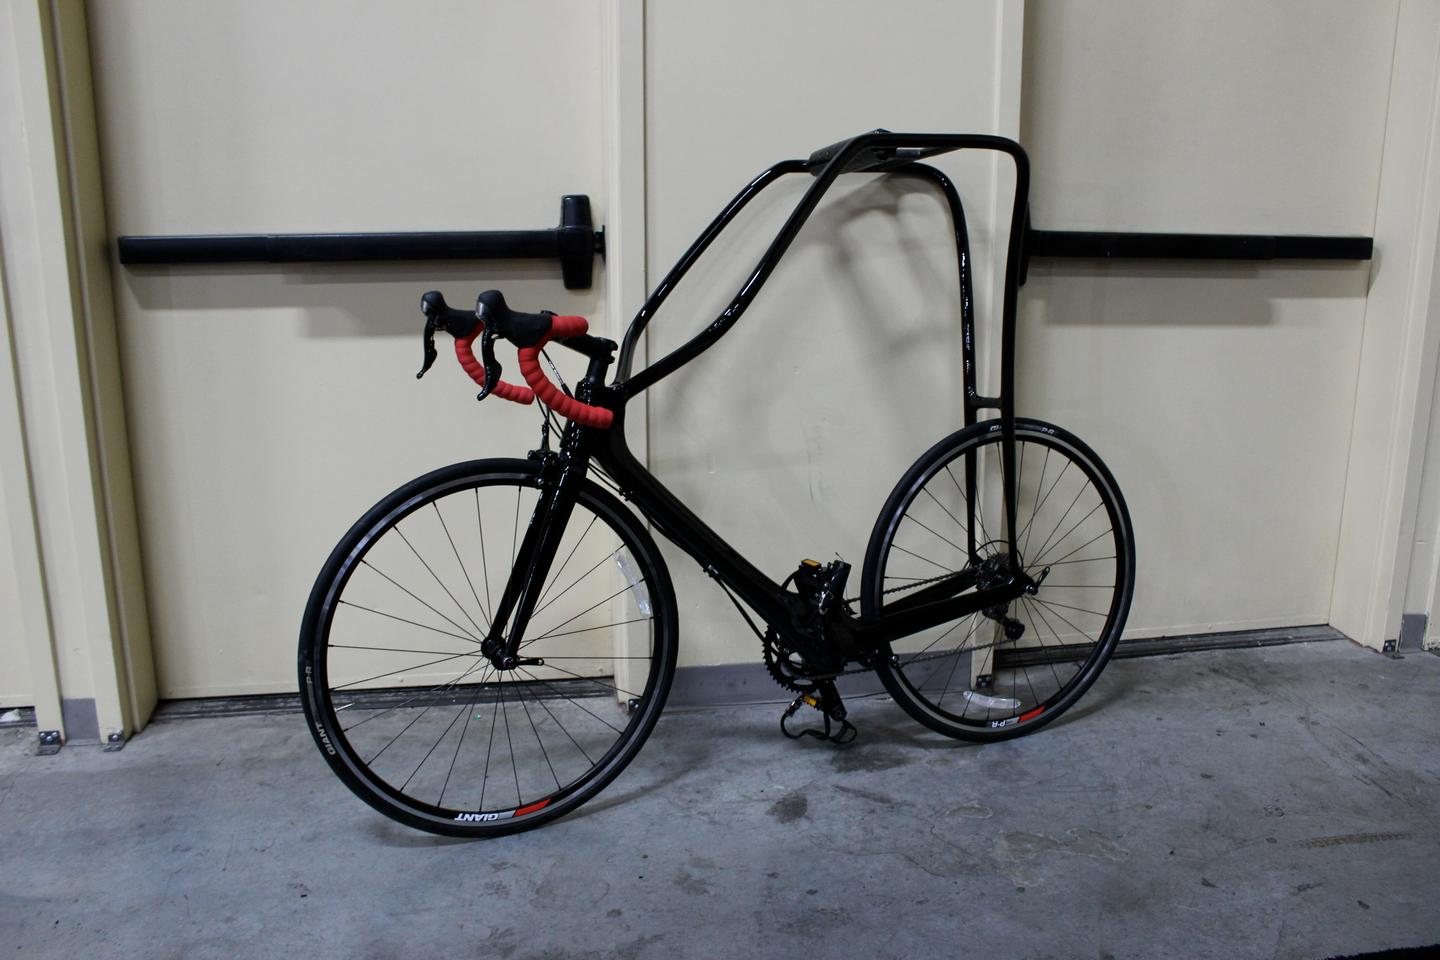 The first production model of the Flying Rider, at Interbike 2014